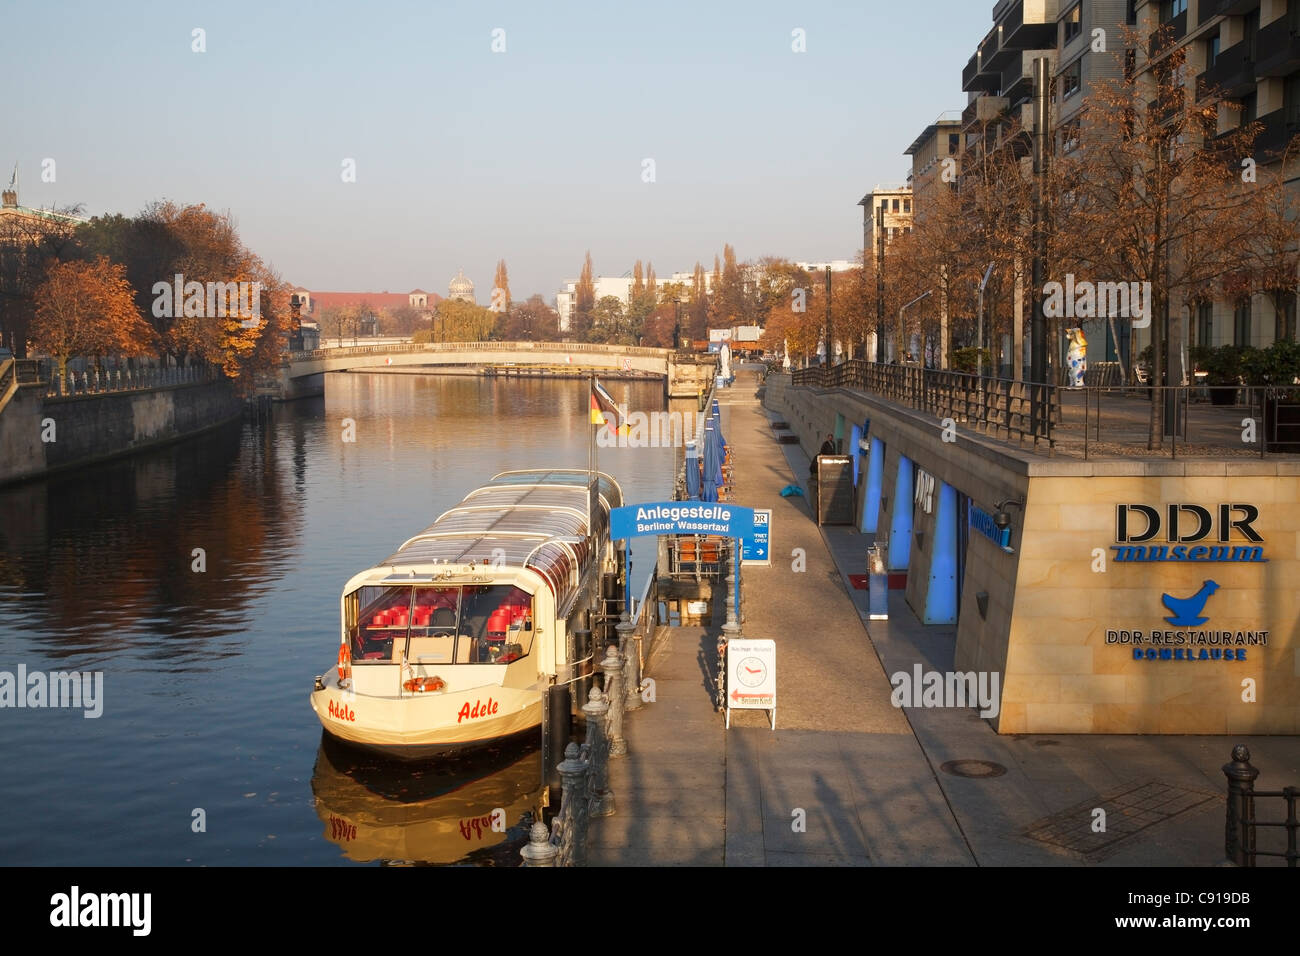 River Spree from Liebknechtbrücke with DDR museum, Berlin, Germany - Stock Image